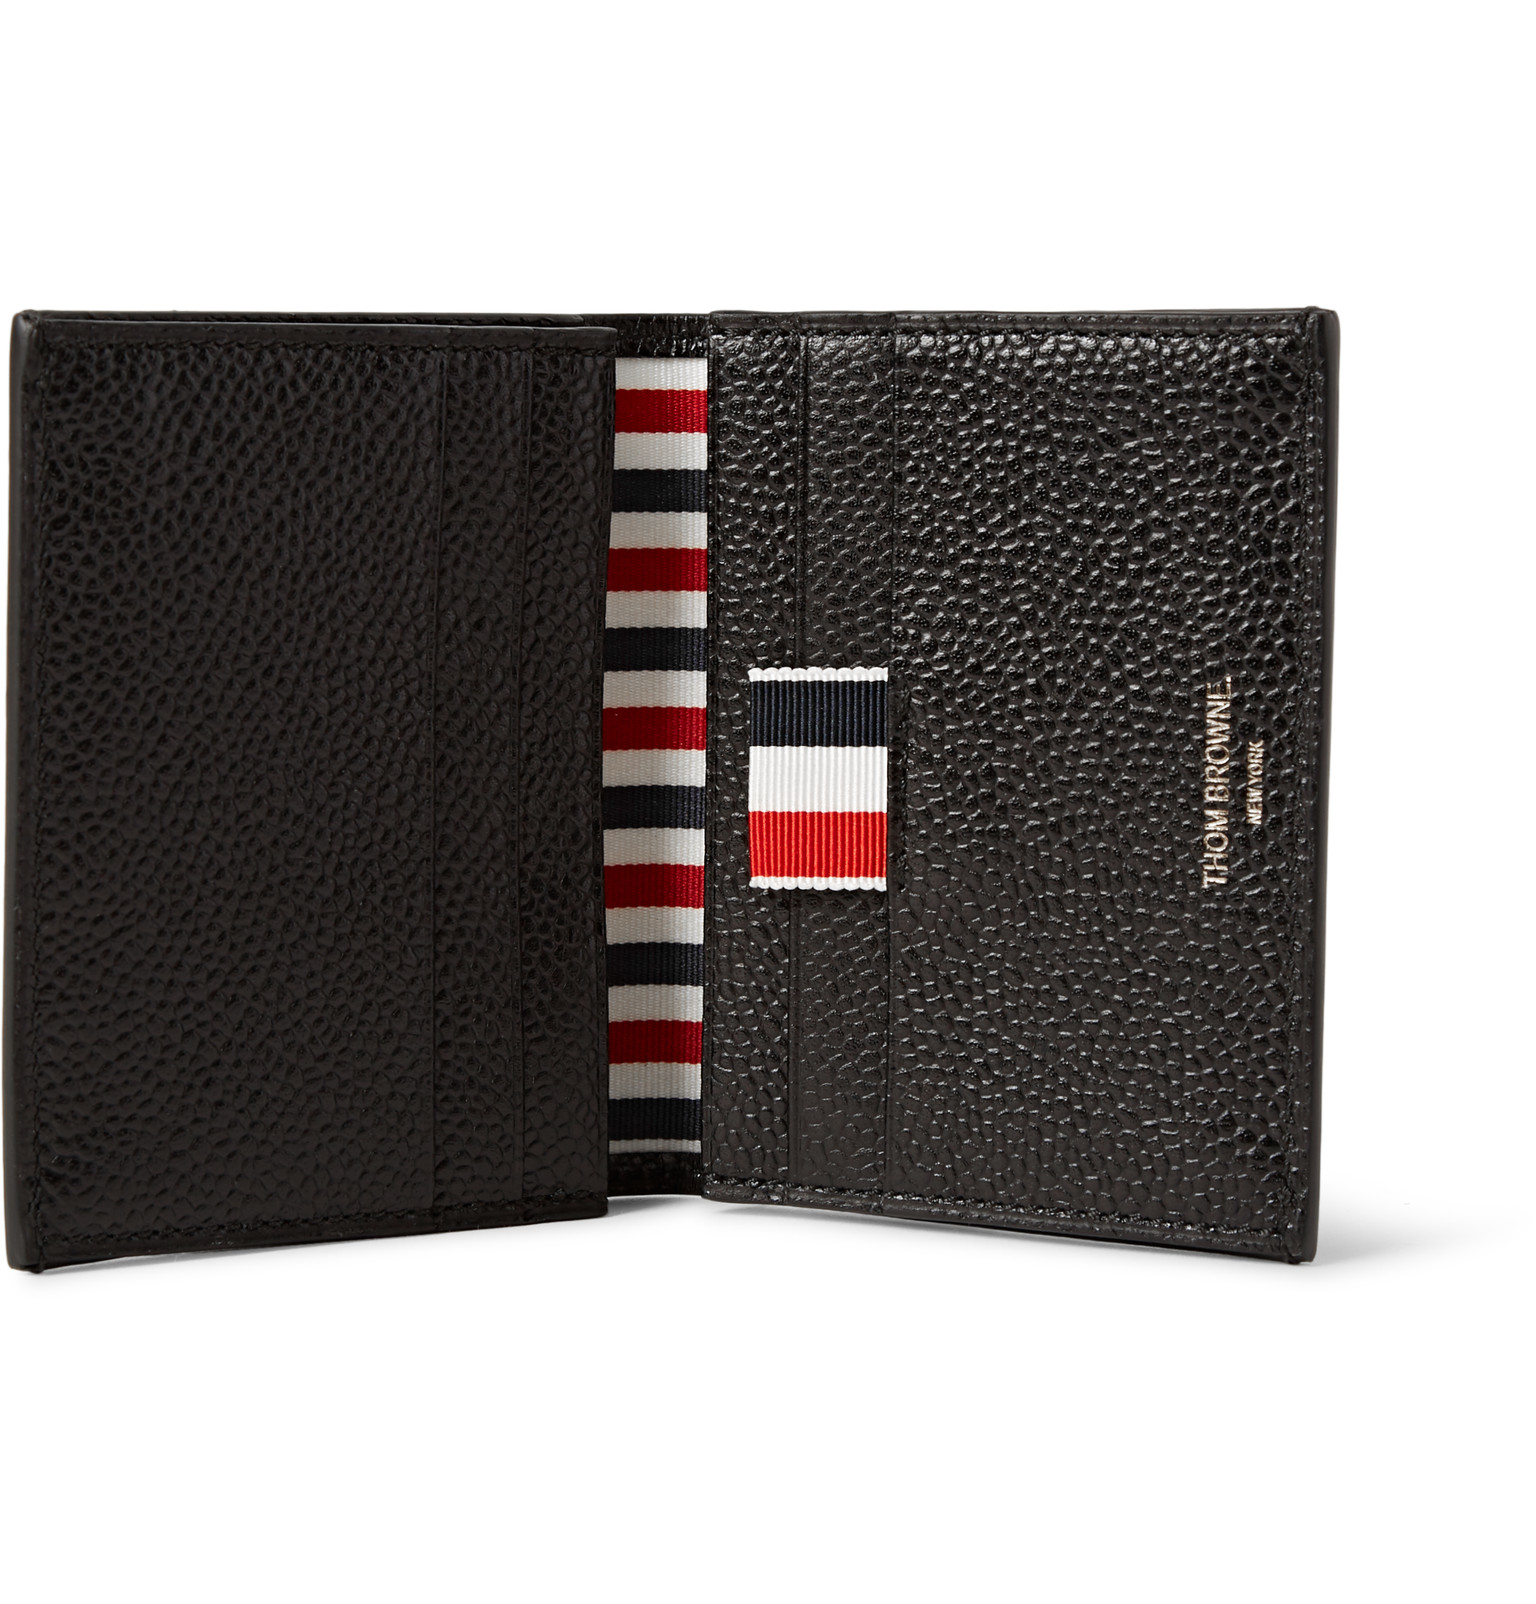 bd79e0176e Thom Browne Striped Pebble-grain Leather Cardholder in Red for Men - Lyst